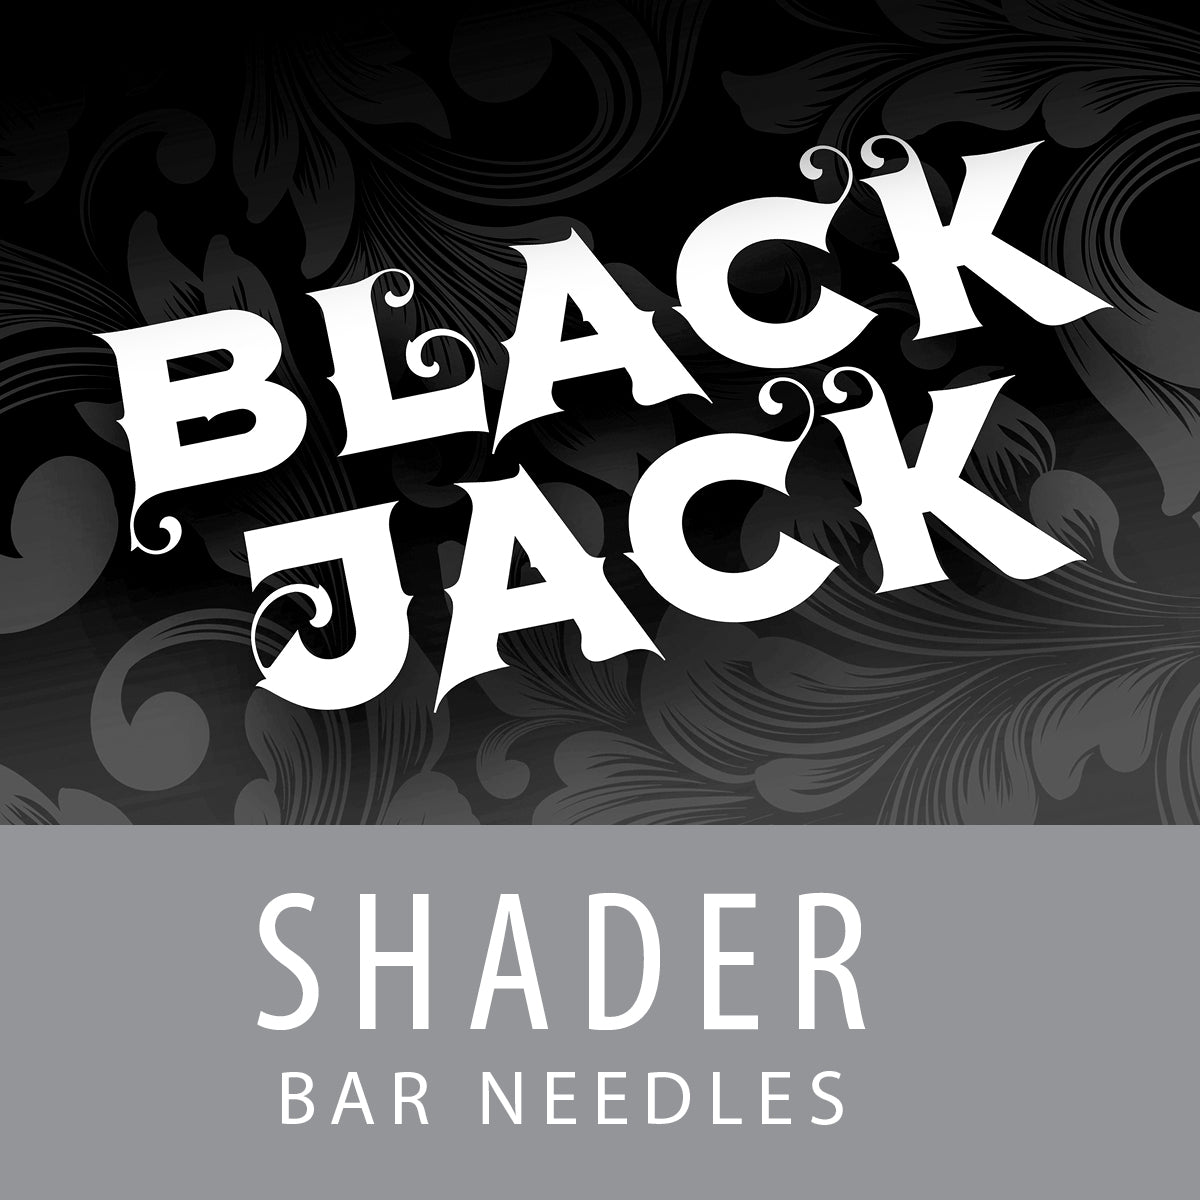 Black Jack Round Shader Bar Needles